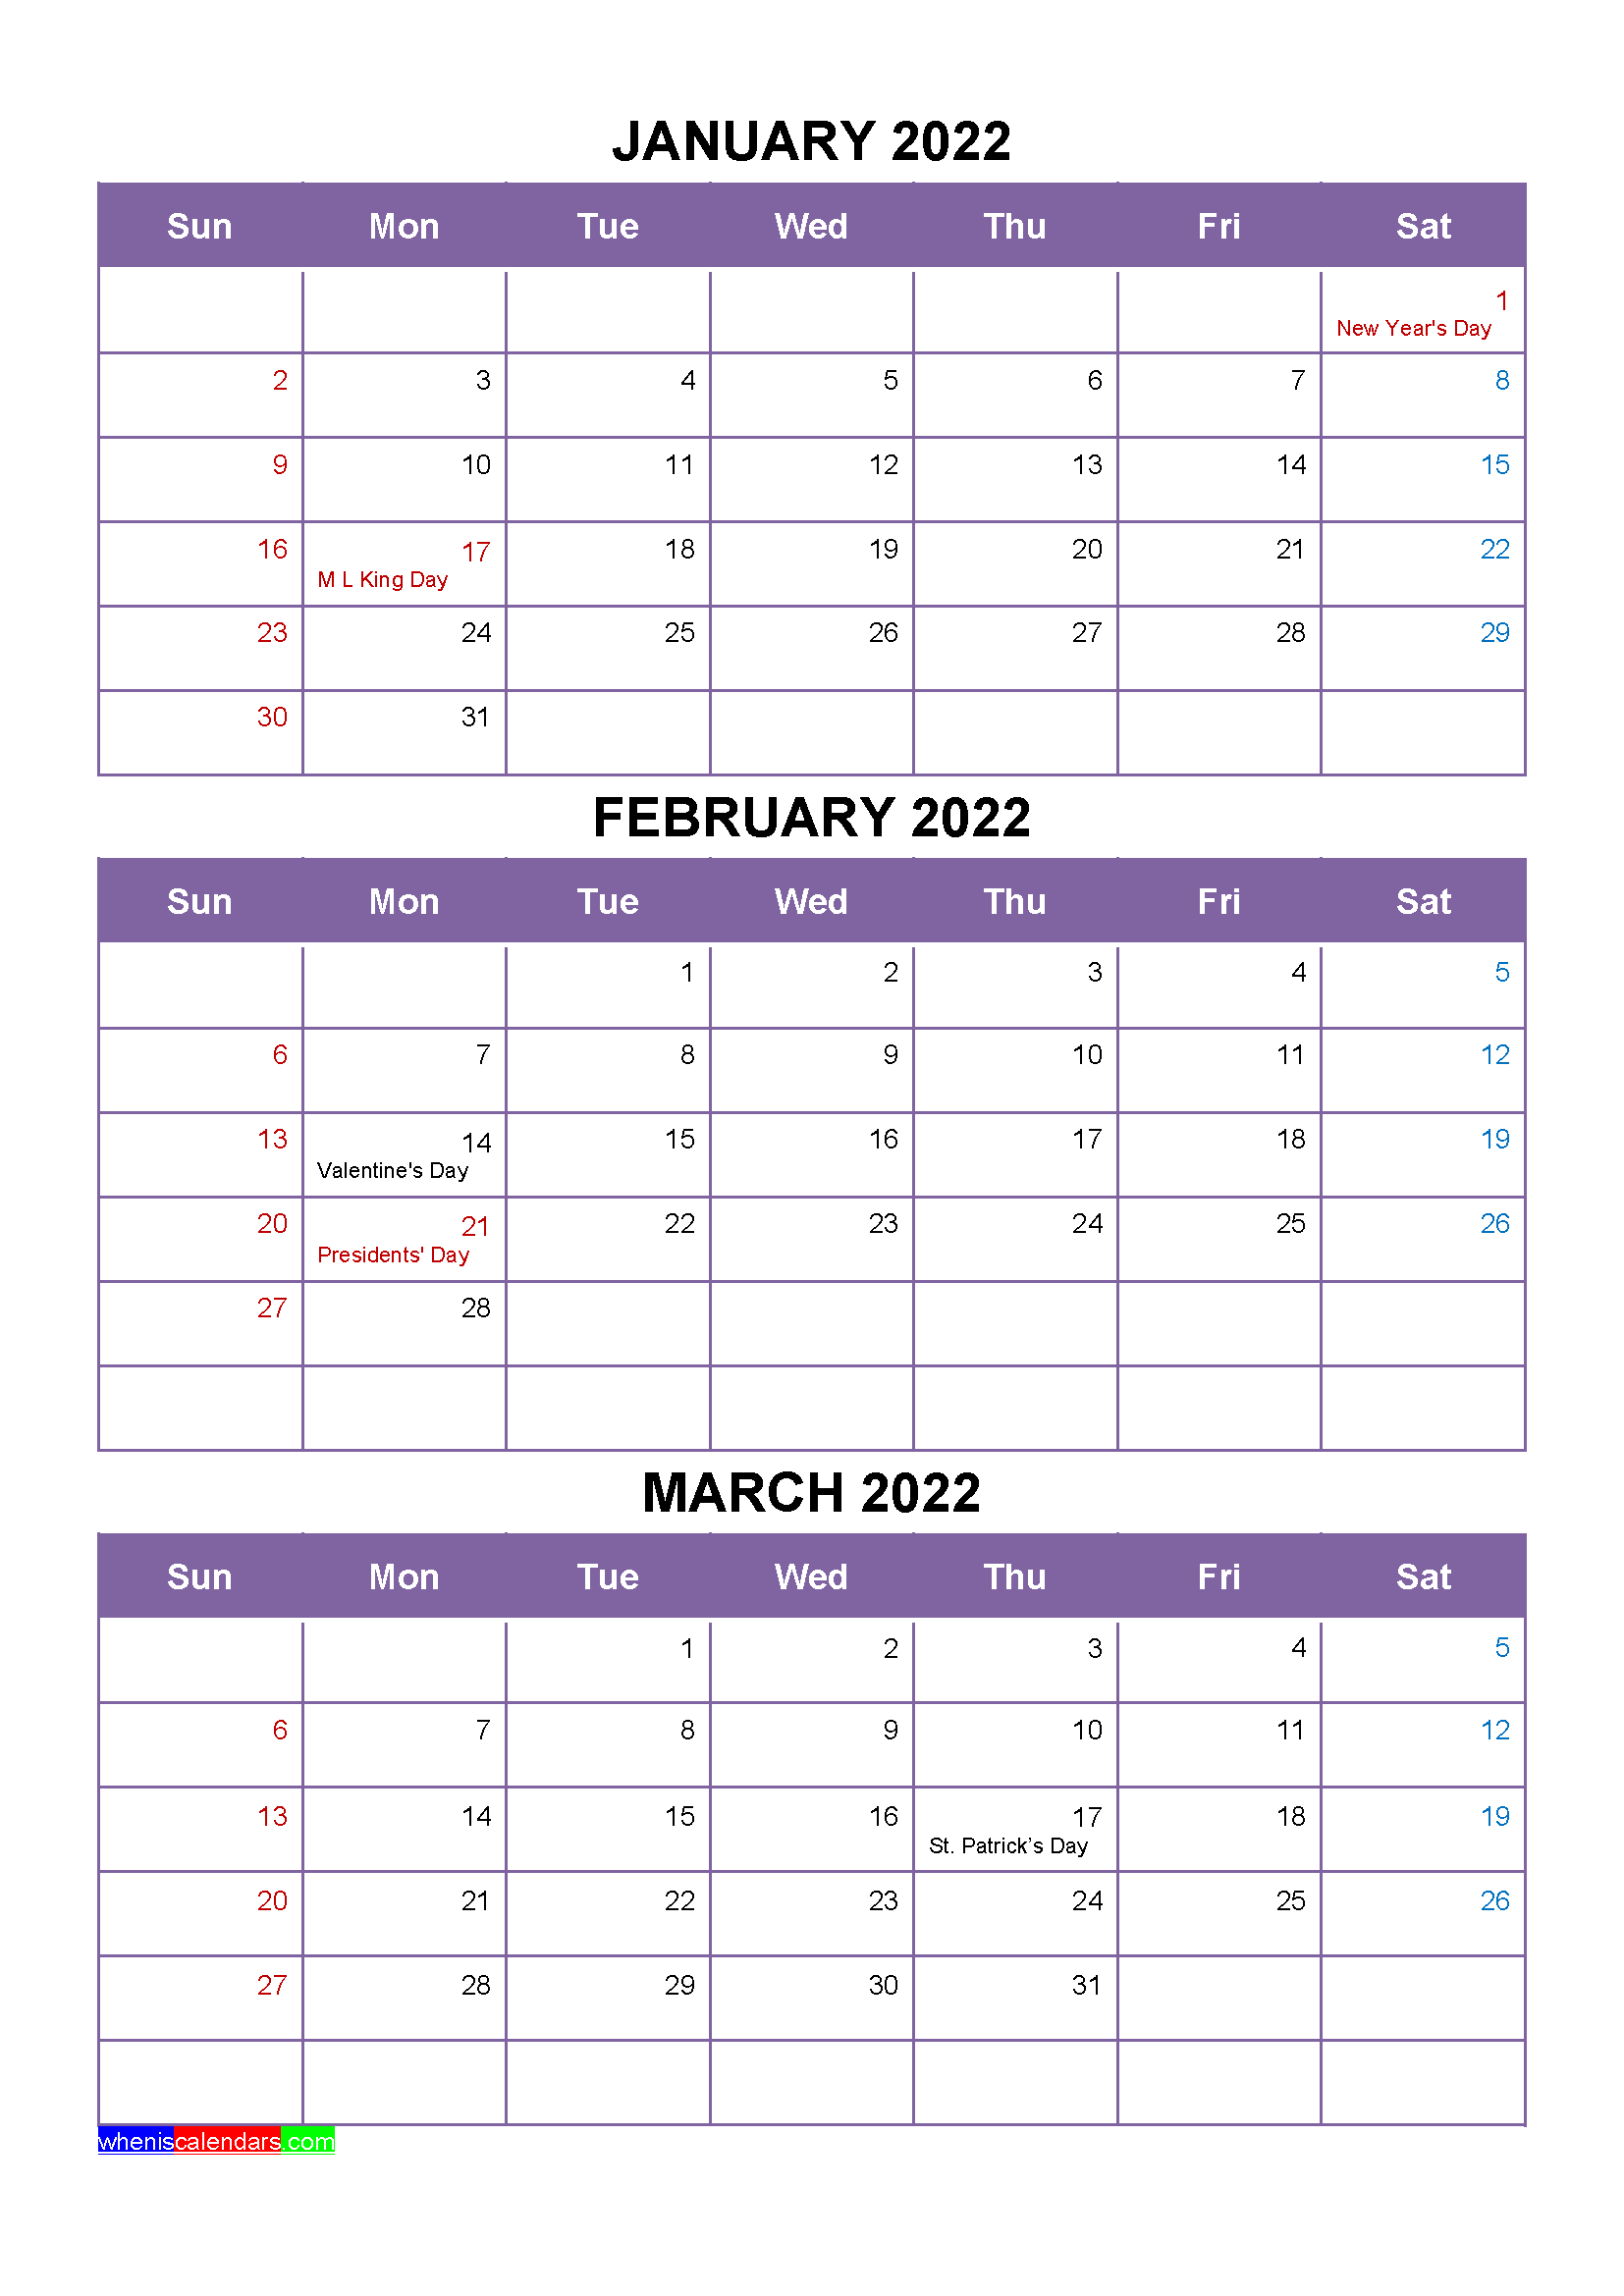 Free Calendar January February March 2022 with Holidays